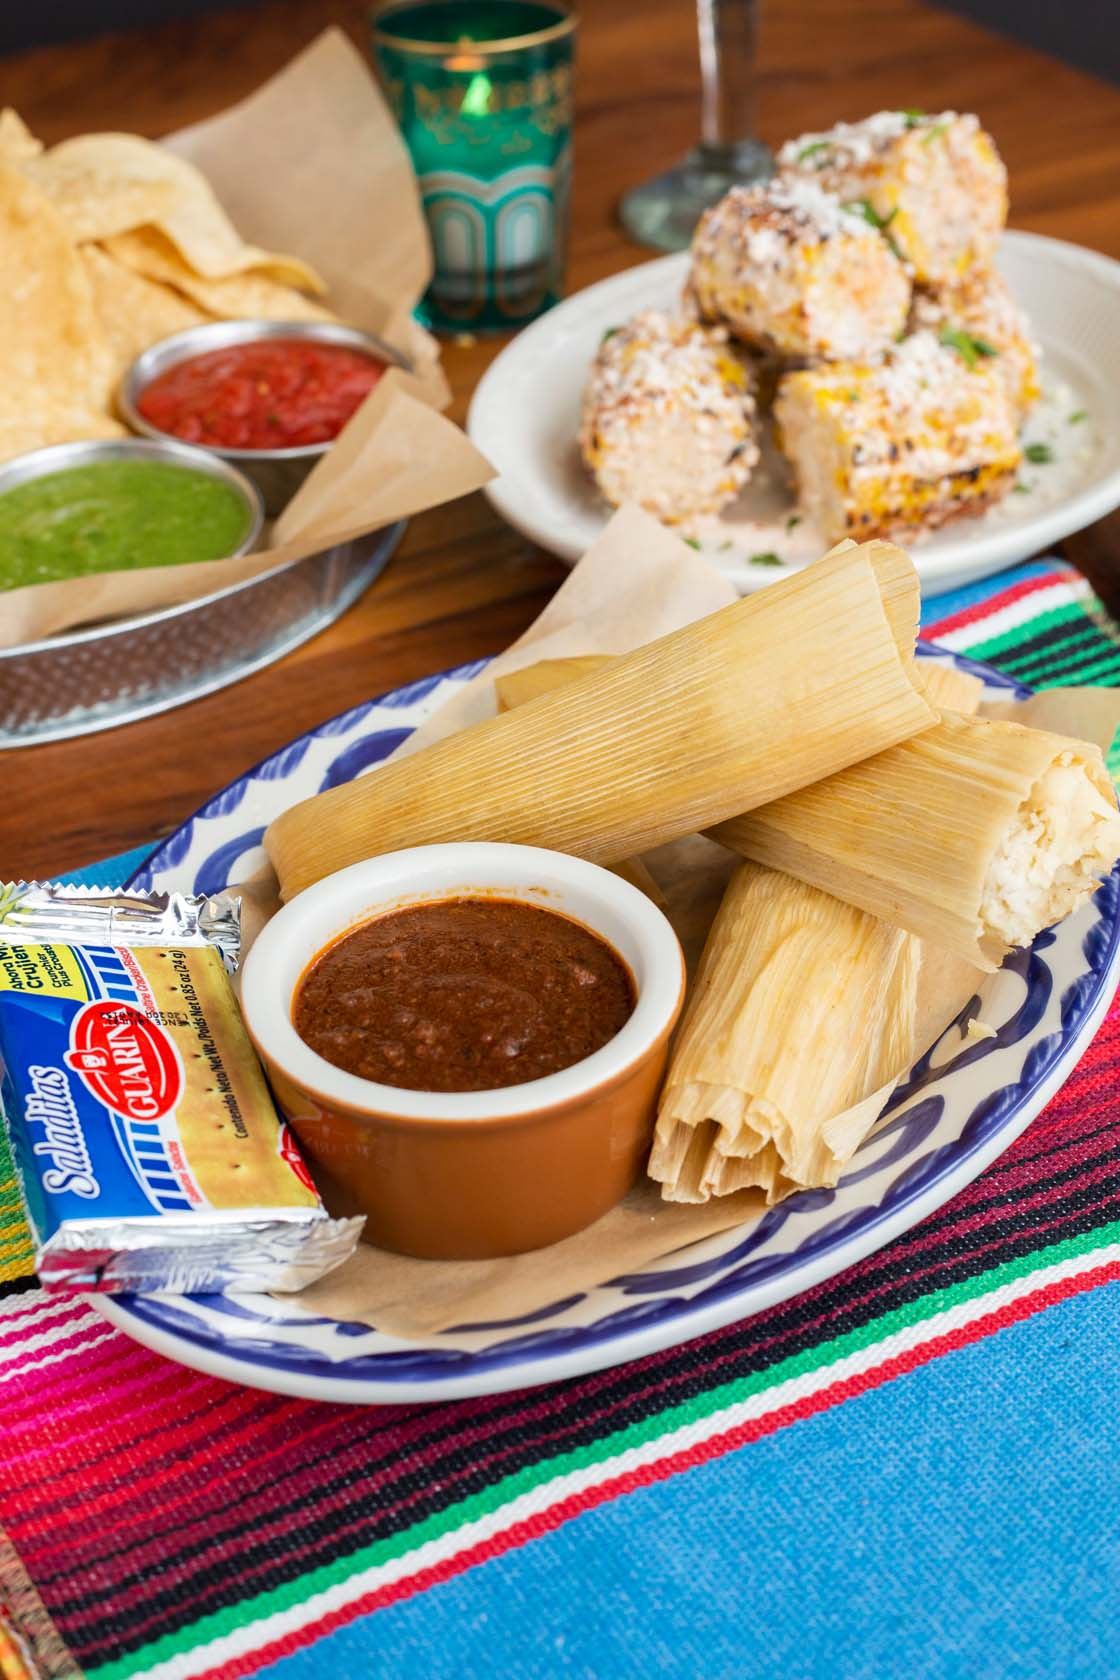 Three plated tamales with chili gravy and packet of saltine crackers